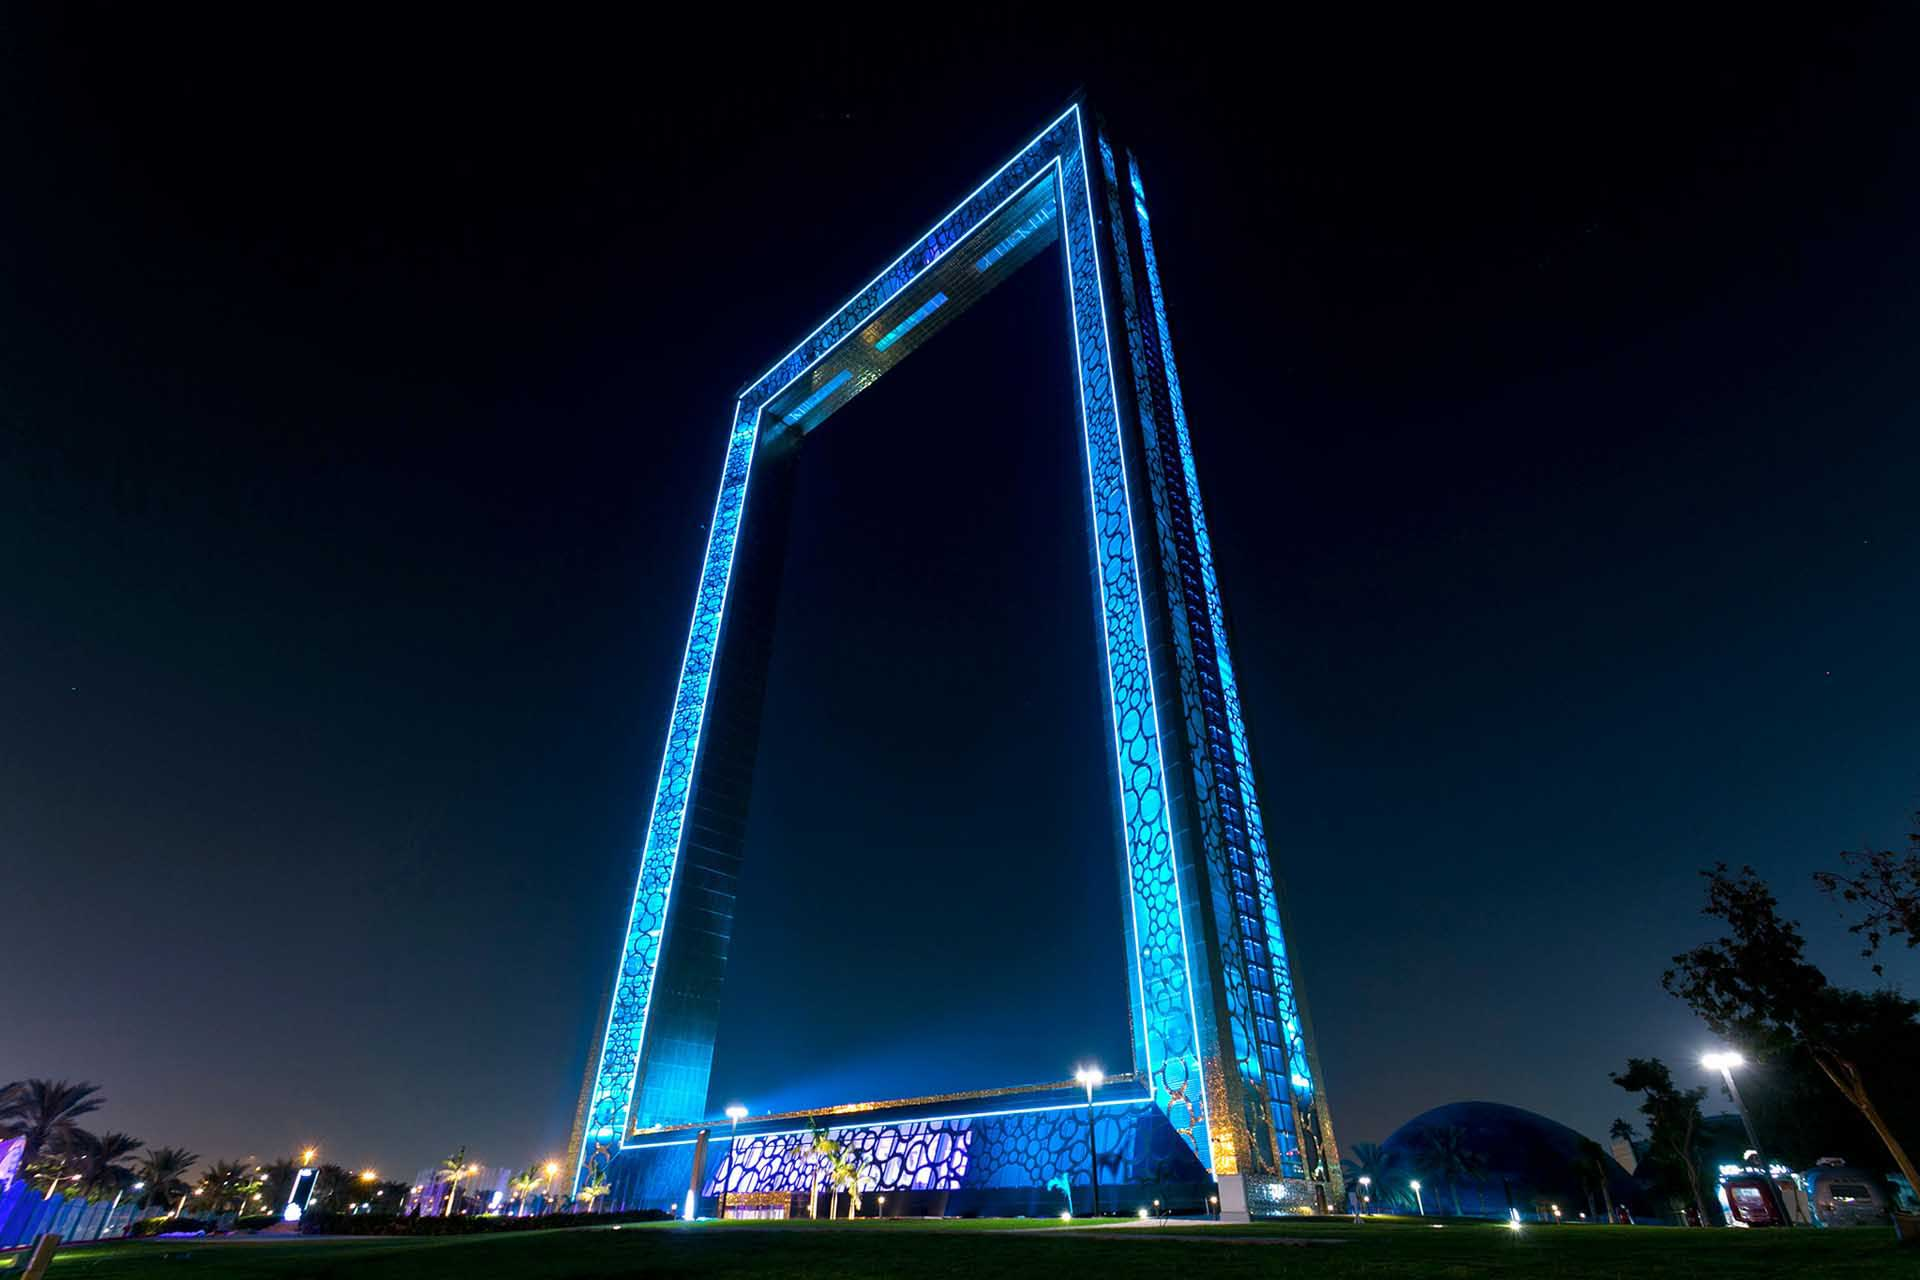 Drop your jaws! The untold spectacular Dubai Frame is here